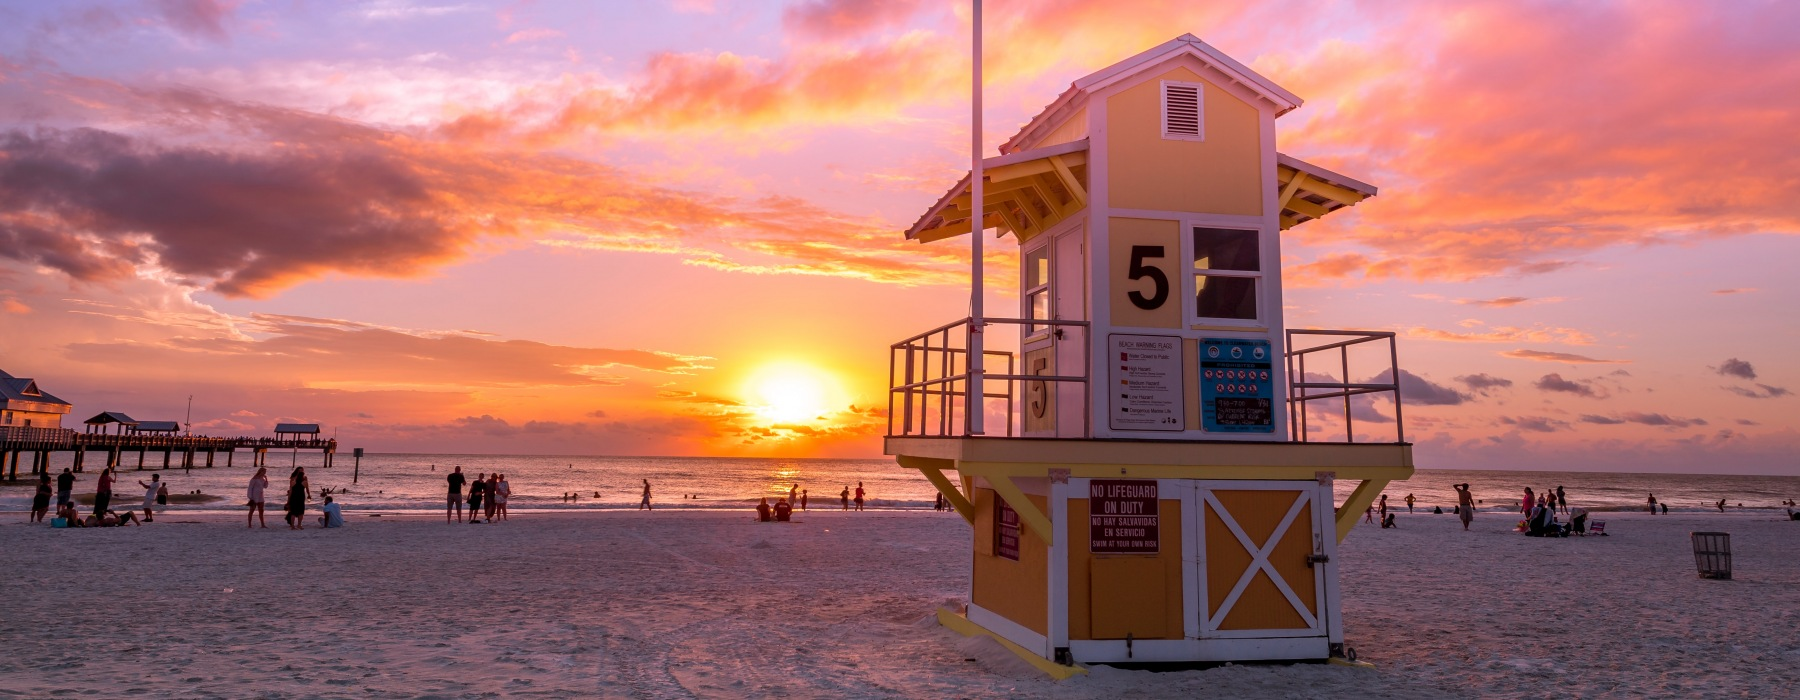 Lifeguard Station on Clearwater Beach